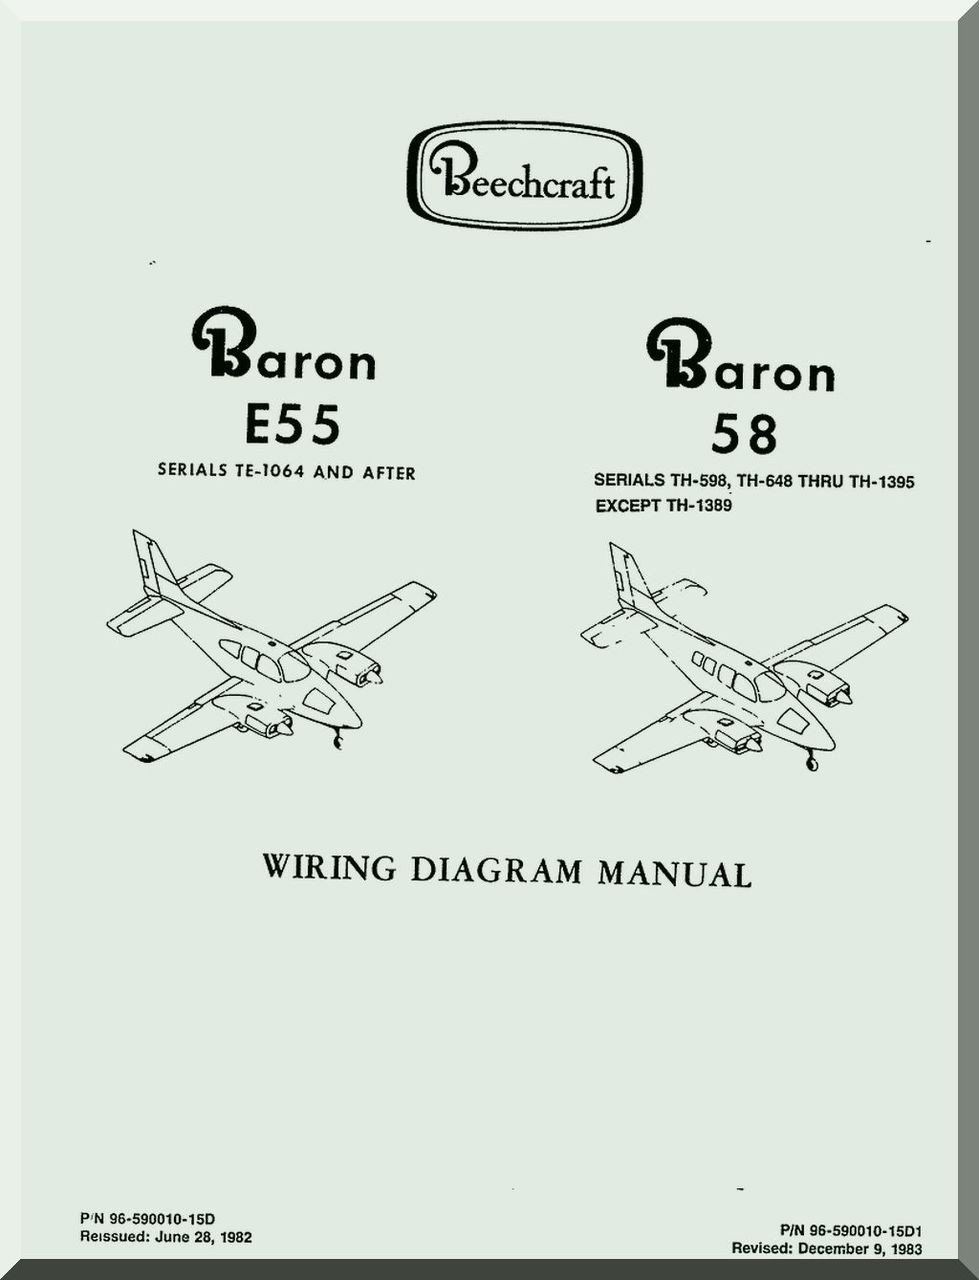 baronE55_58_wiring_diagram_manual0001__61898.1446526384.1280.1280?c\\\=2 electrical wiring diagram makita 6302 gandul 45 77 79 119 Metasys Ahu Controller at edmiracle.co